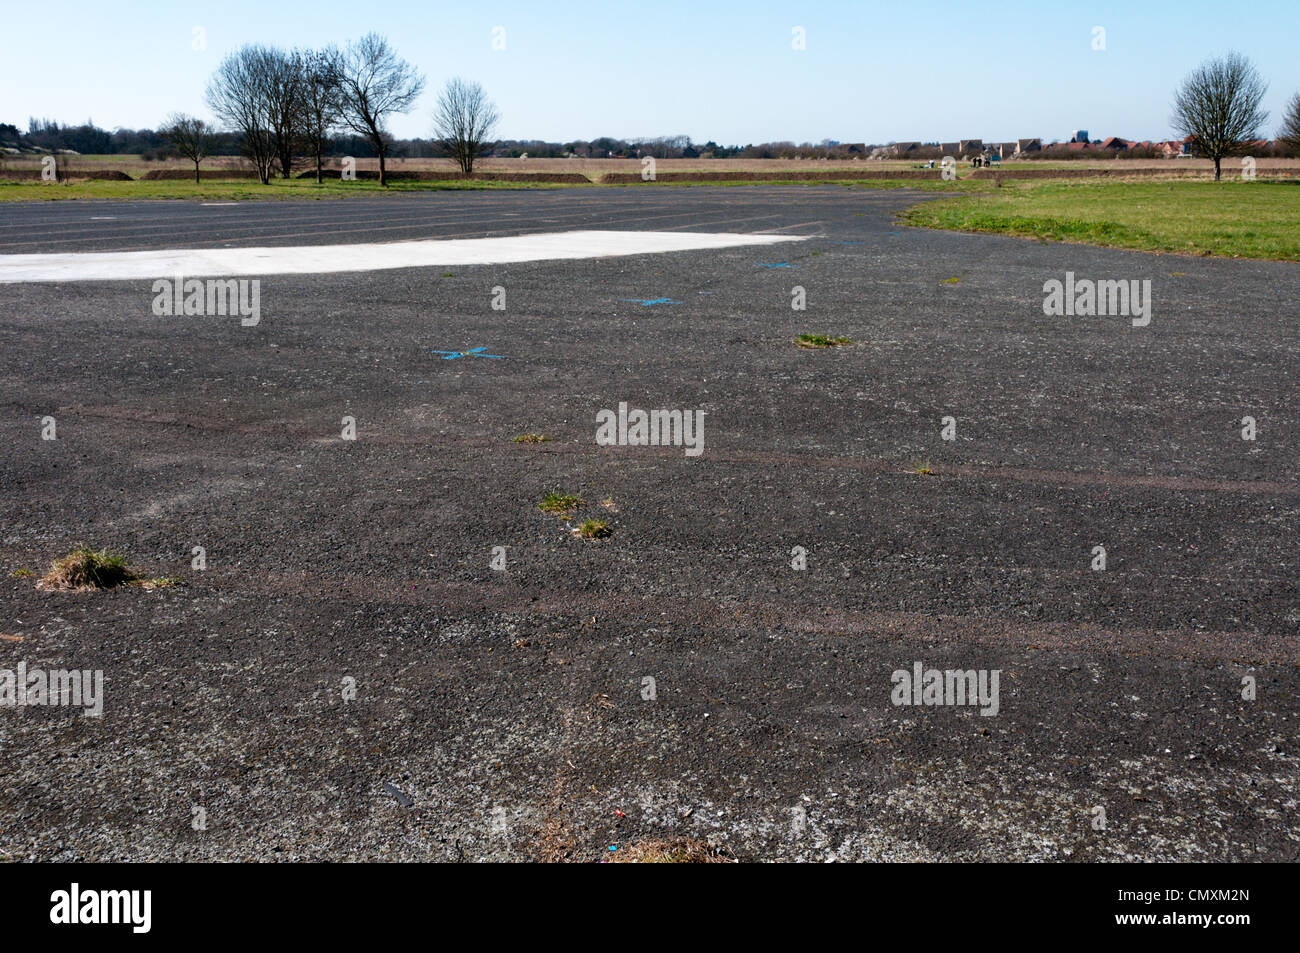 This area of tarmac is all that is left of the runways of the old Croydon Aerodrome in Roundshaw Park. SEE DESC - Stock Image